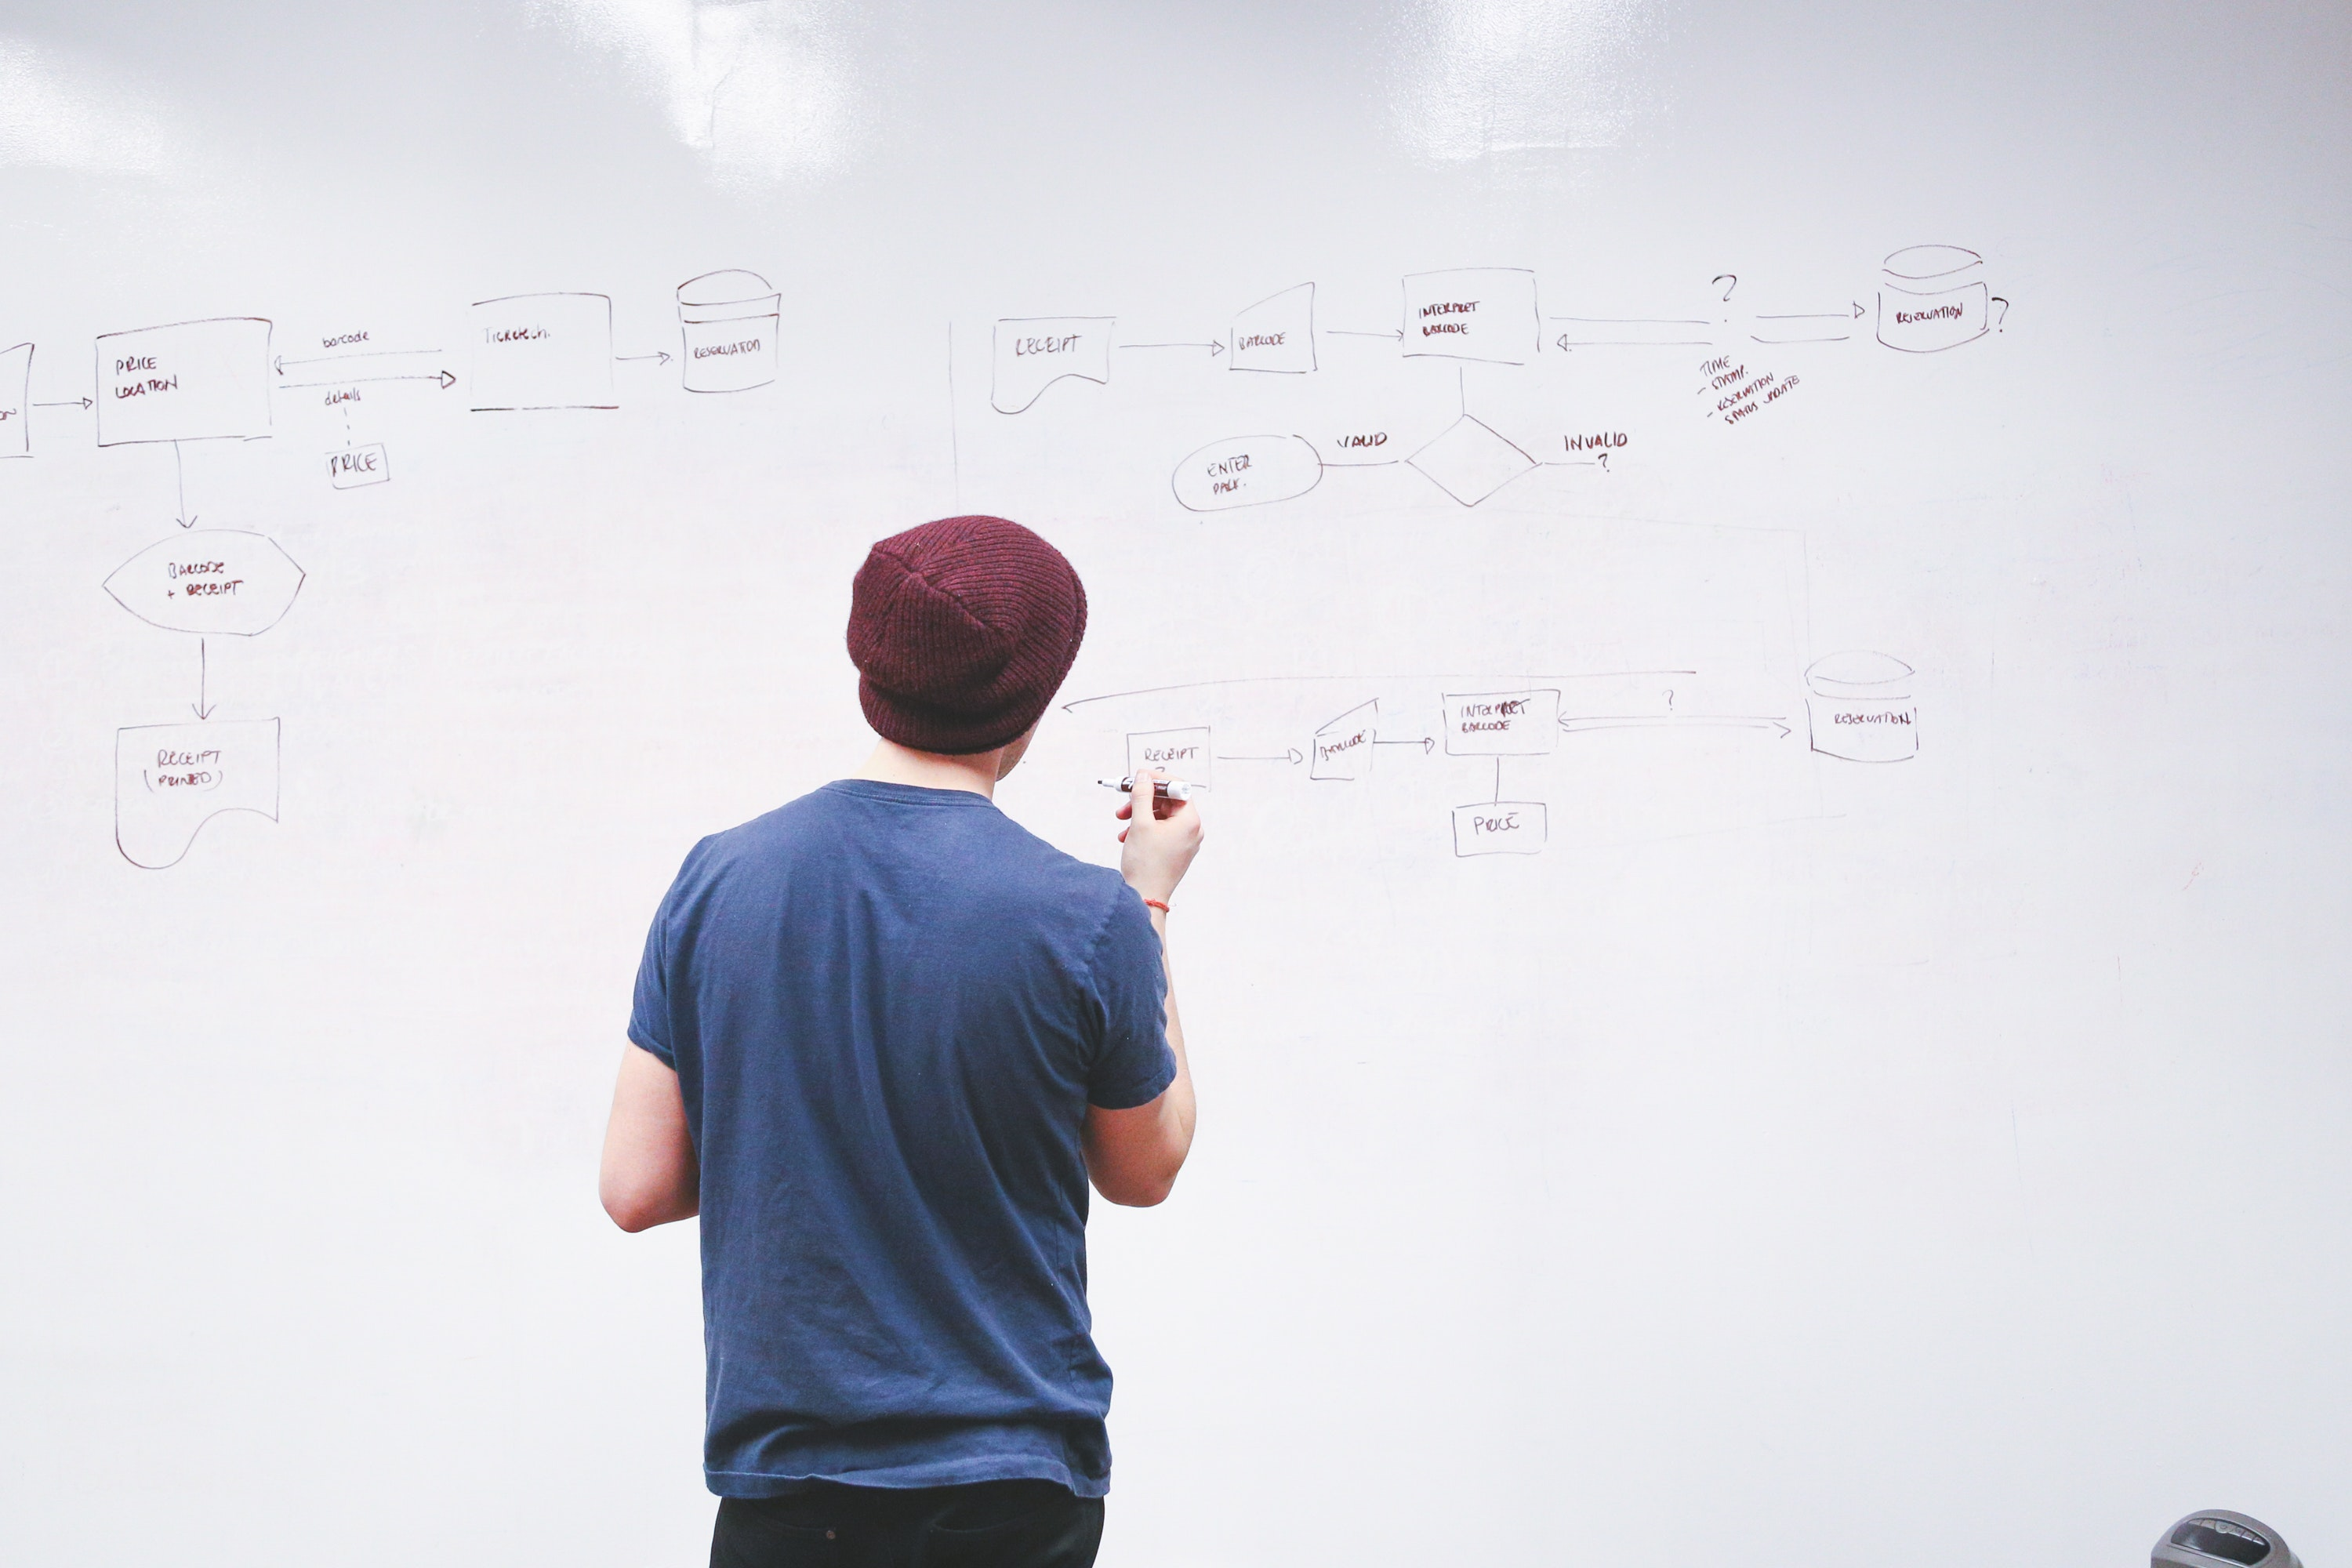 Man standing in front of a white board. The white board has a couple of flowcharts drawn on it.